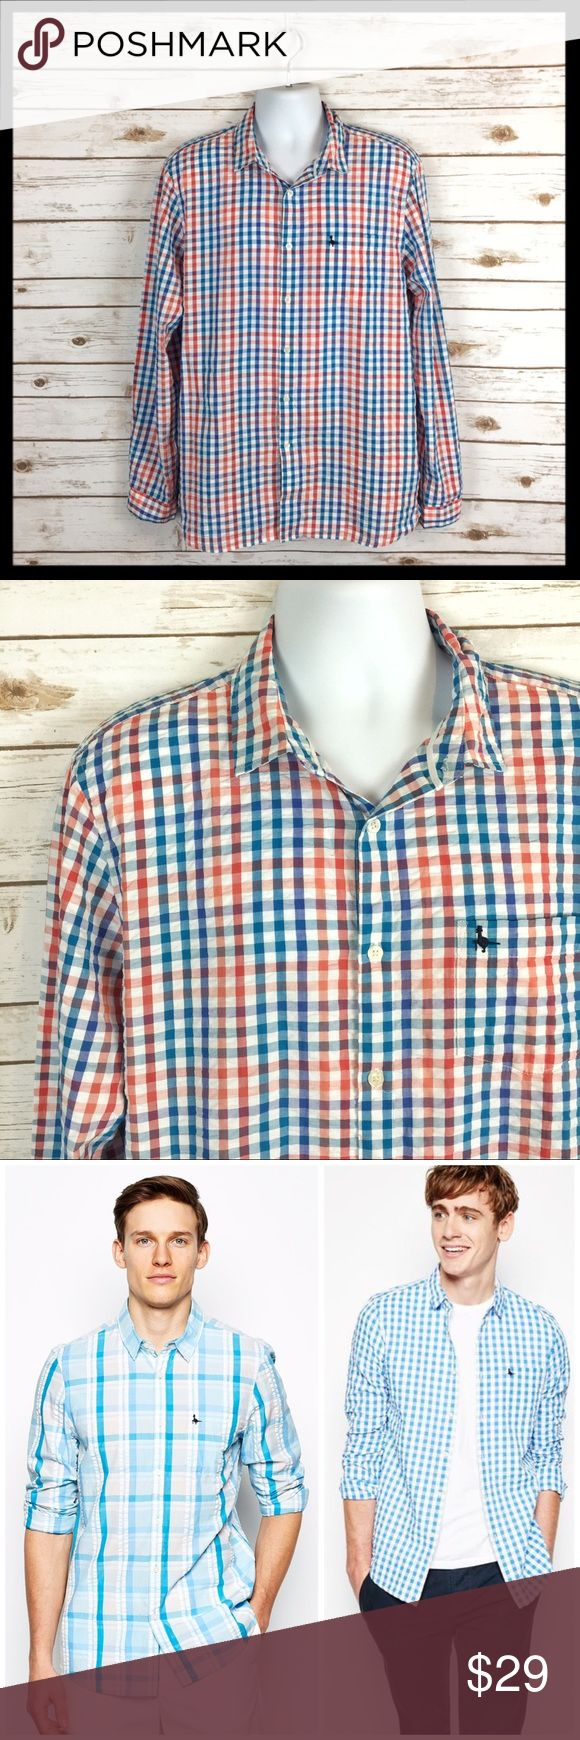 "jack wills // gingham check plaid seersucker shirt Perfect for the season! This shirt by Jack Wills has that classic seersucked (somewhat crinkled) texture that screams summer. Red, blue and white gingham check pattern. 100% cotton. Great preowned condition. Underarm to underarm measures 24"" across lying flat. Jack Wills Shirts Casual Button Down Shirts"